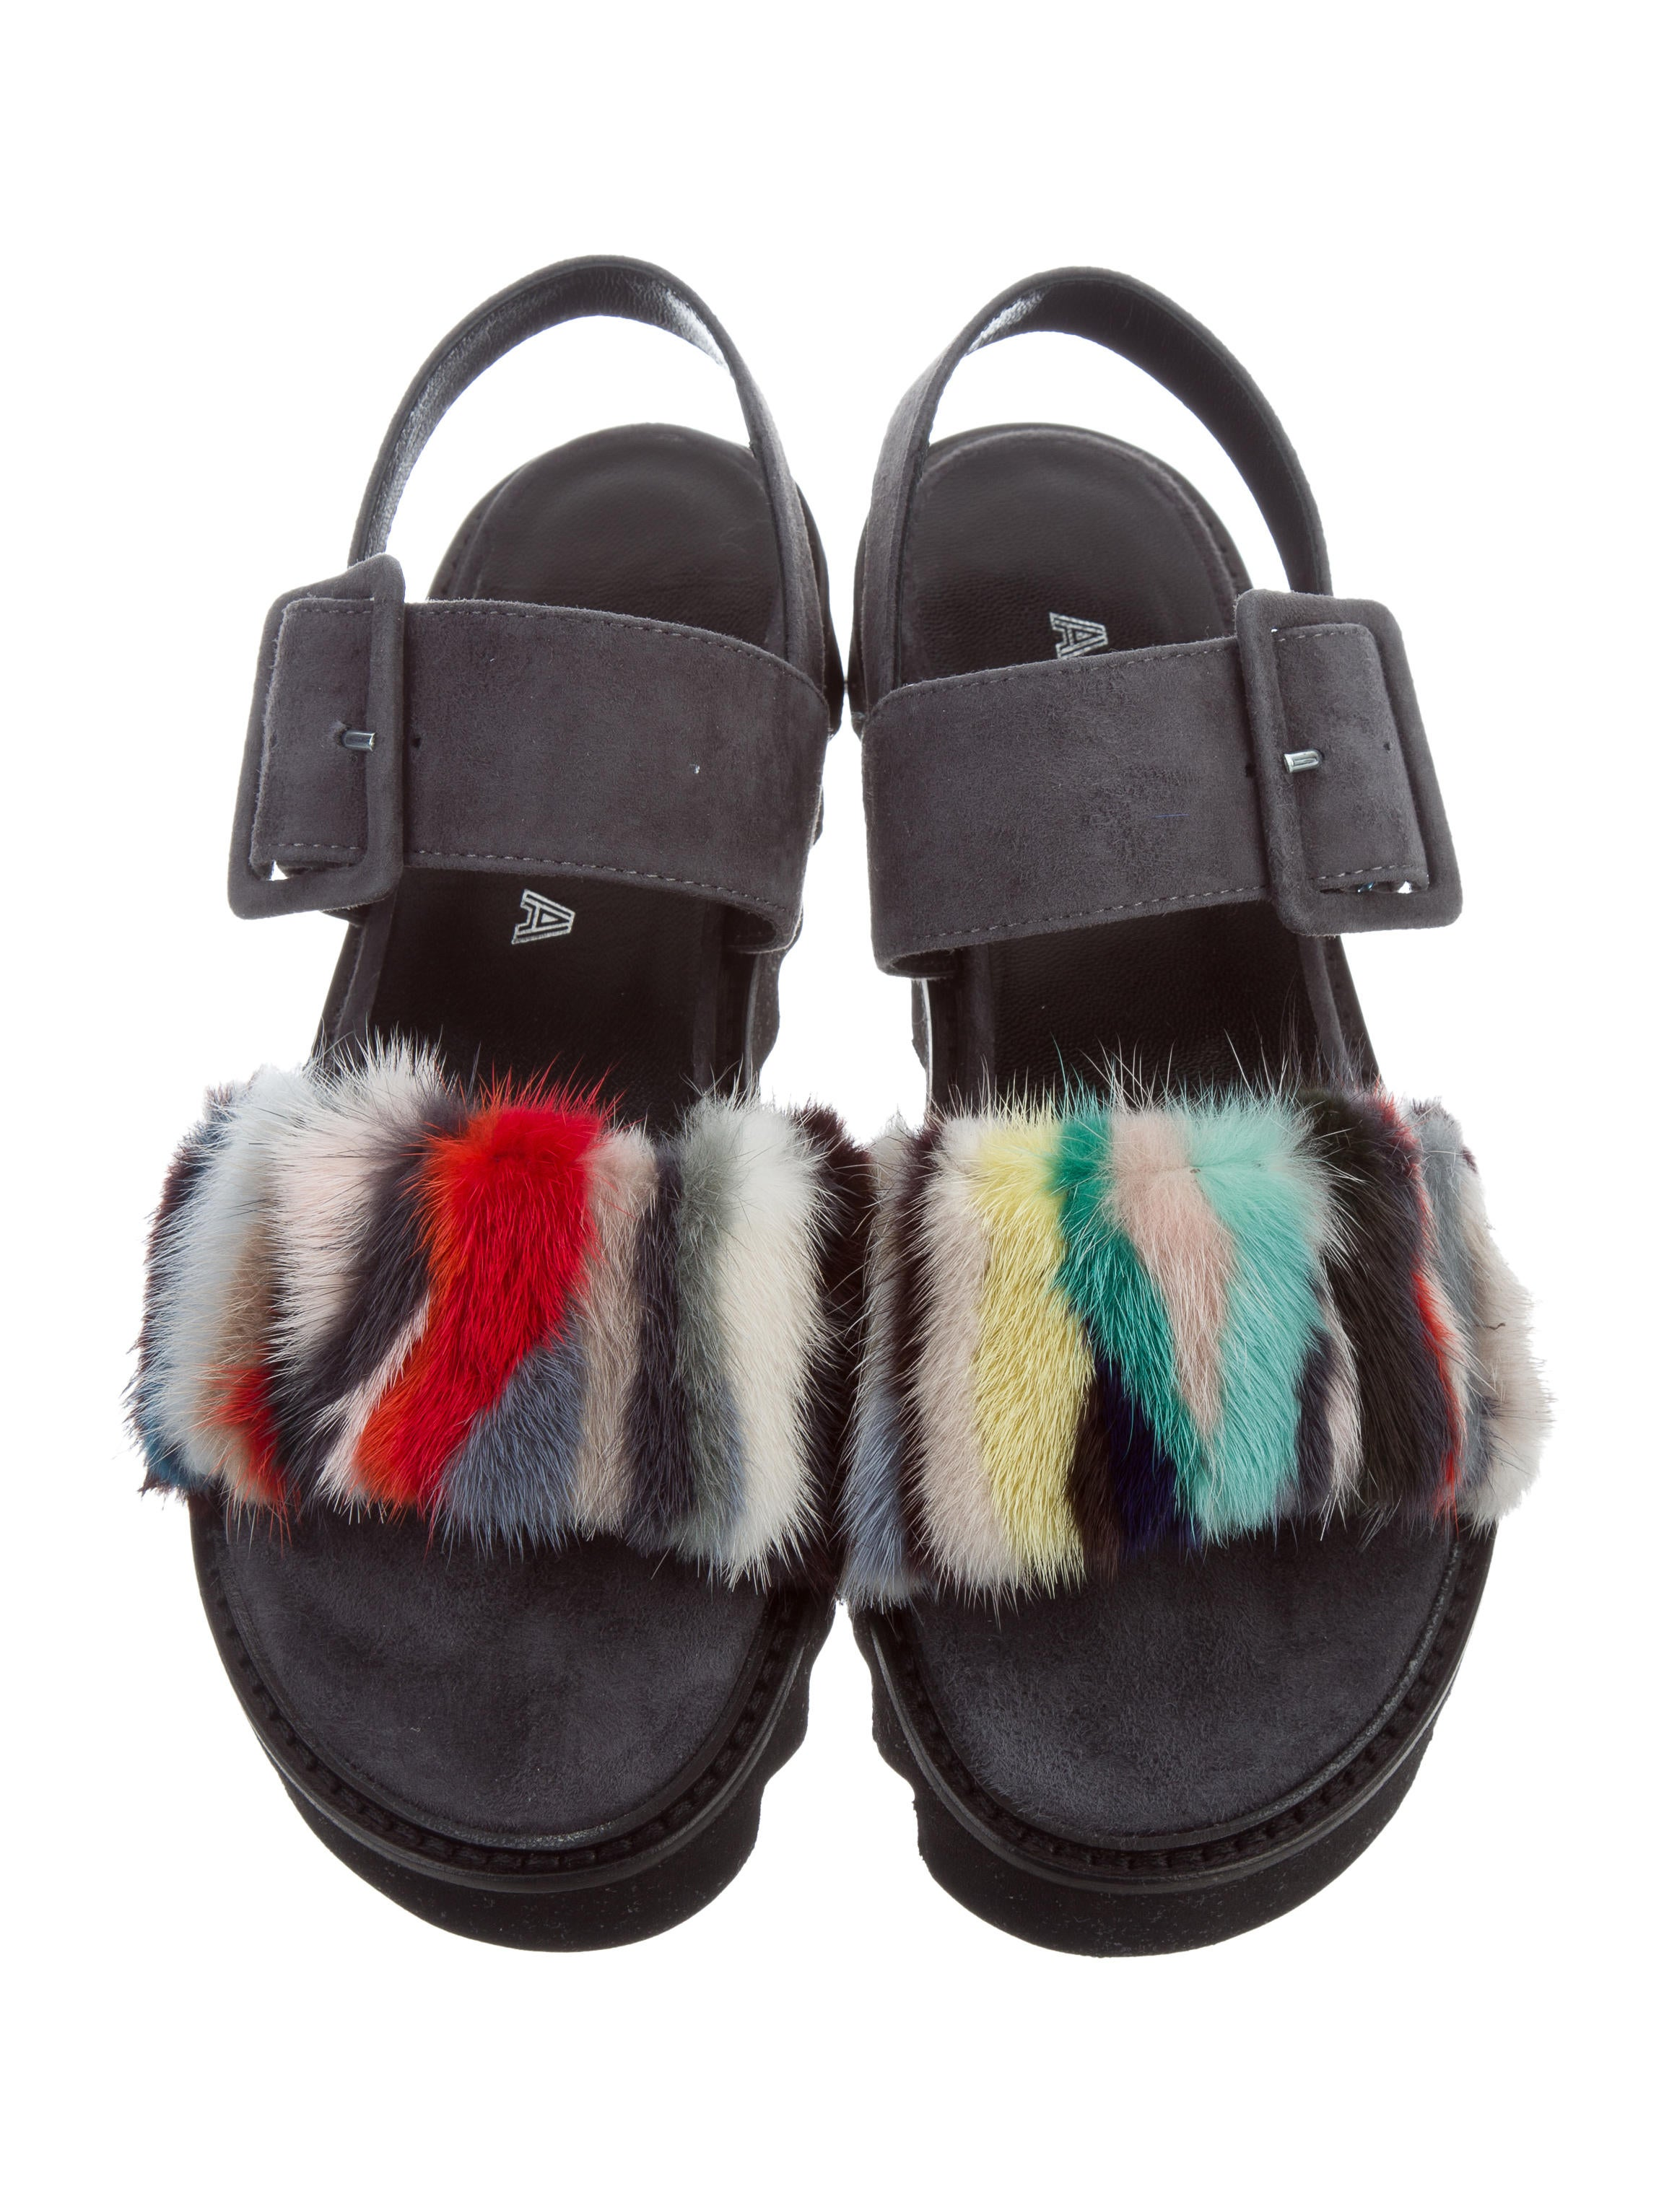 clearance online ebay Aska Eva Mink Sandals w/ Tags discount best store to get buy cheap purchase wJly7